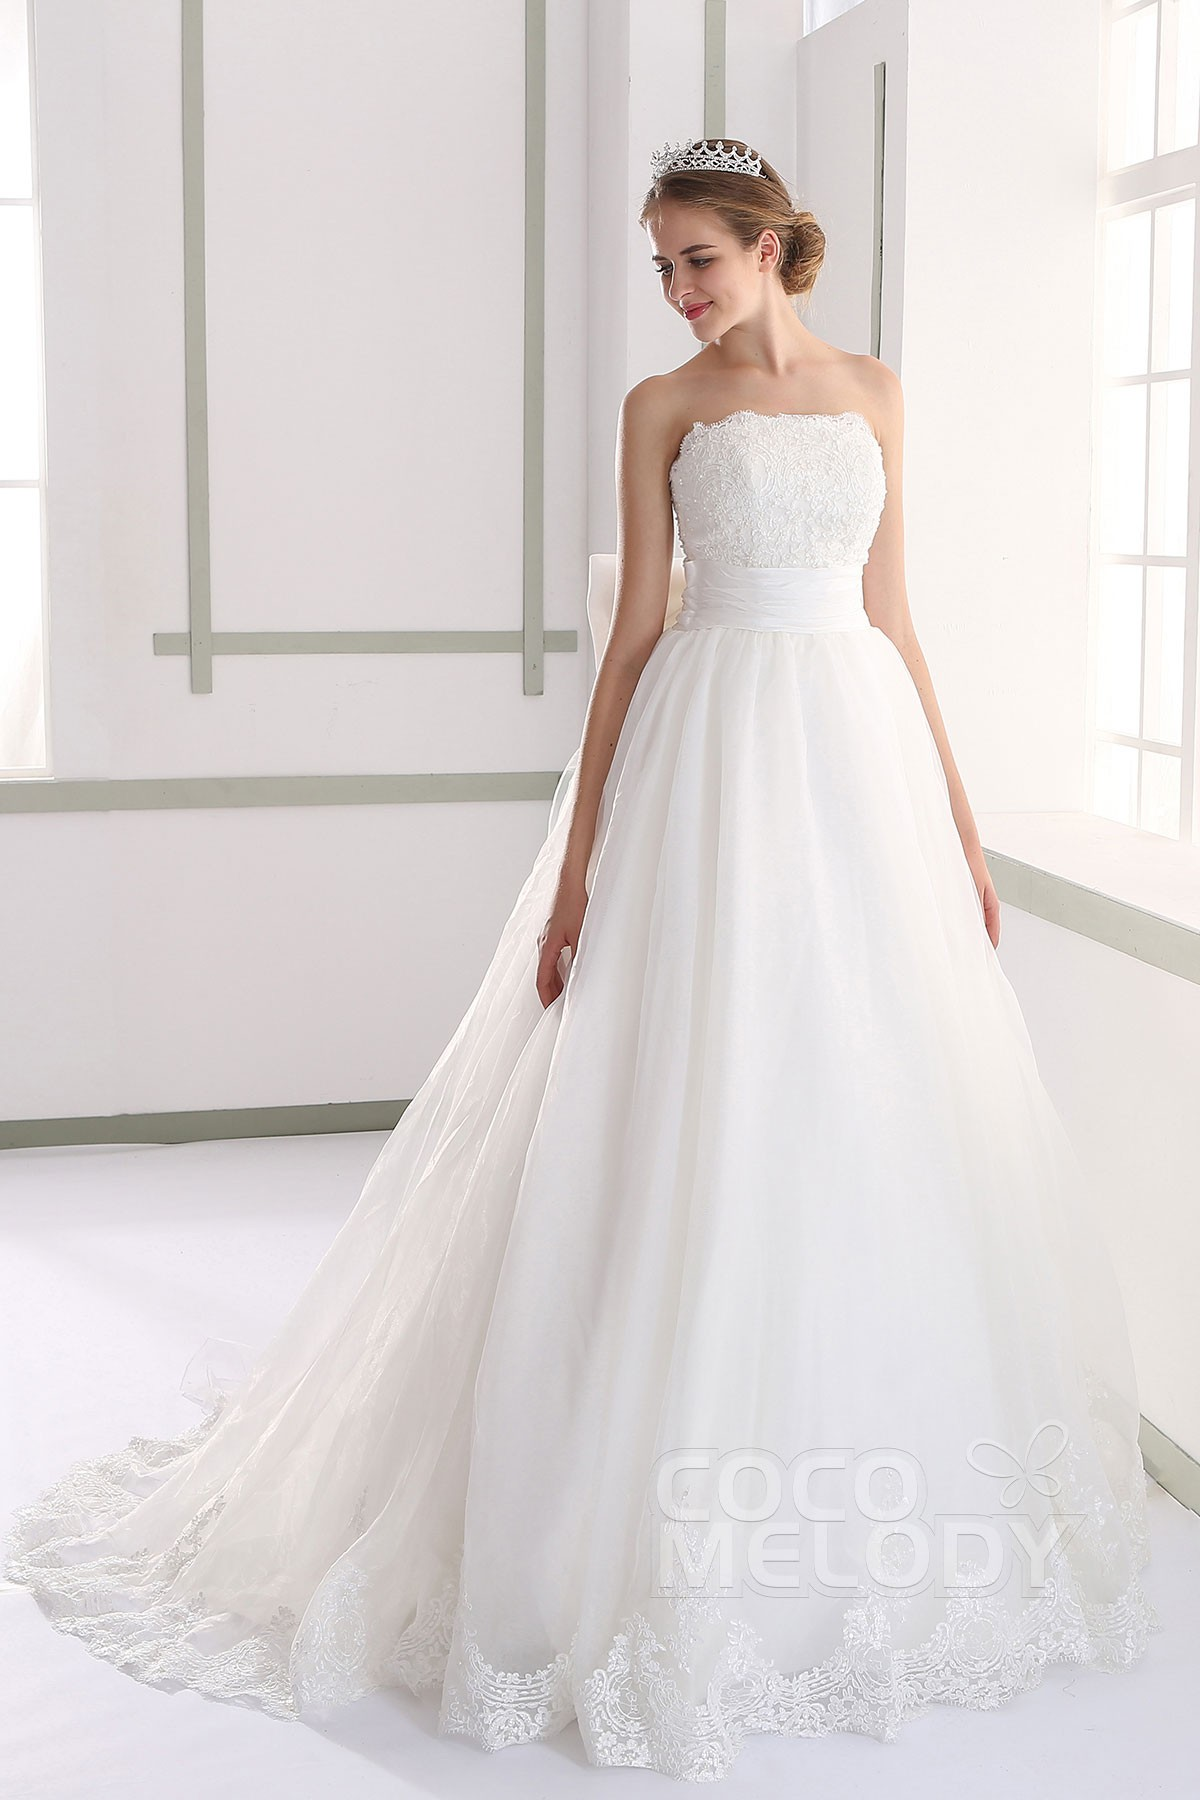 A Line Strapless Organza Wedding Dress Bowknot Lh189 Cocomelody